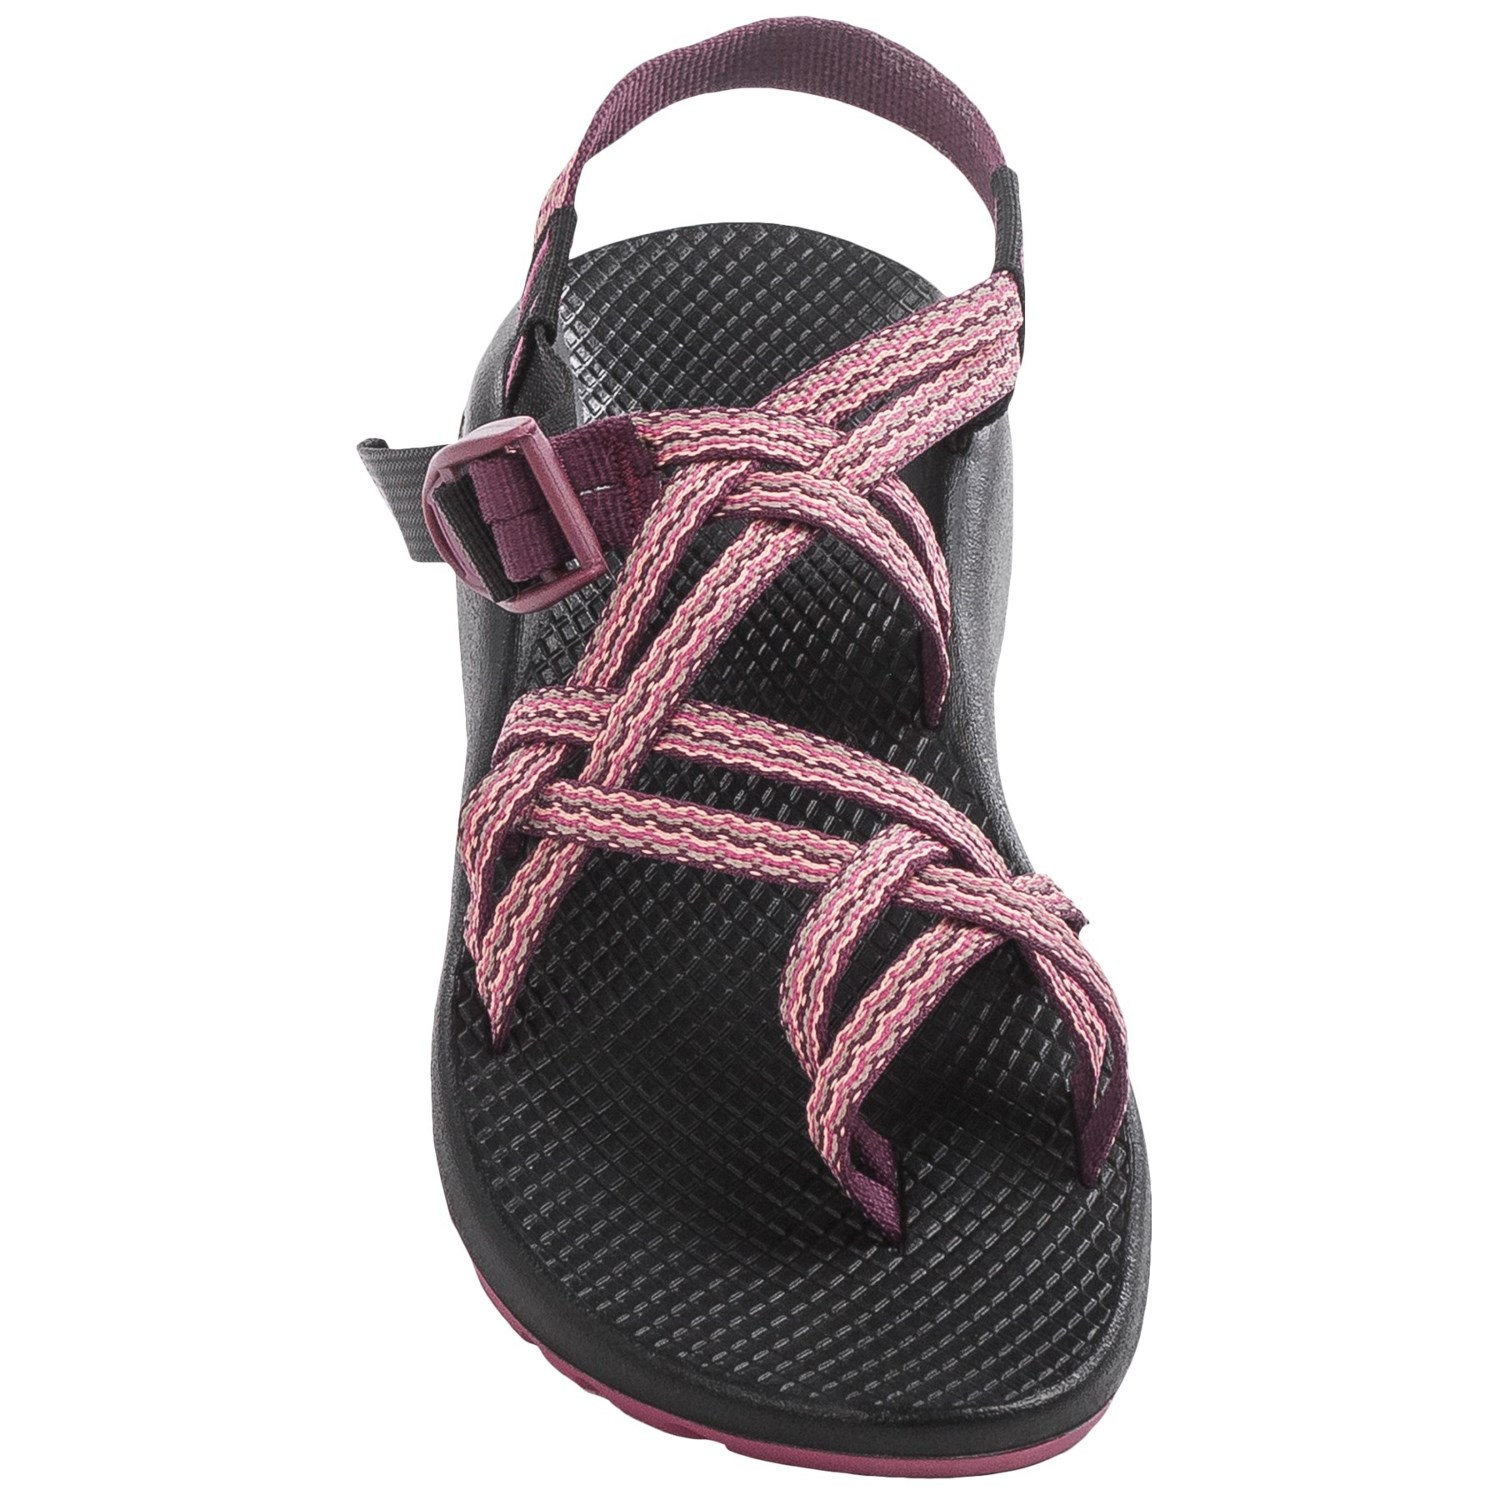 b42772f6c4d5 Chaco ZX 2® Classic Sport Sandals (For Women) - Save 42%